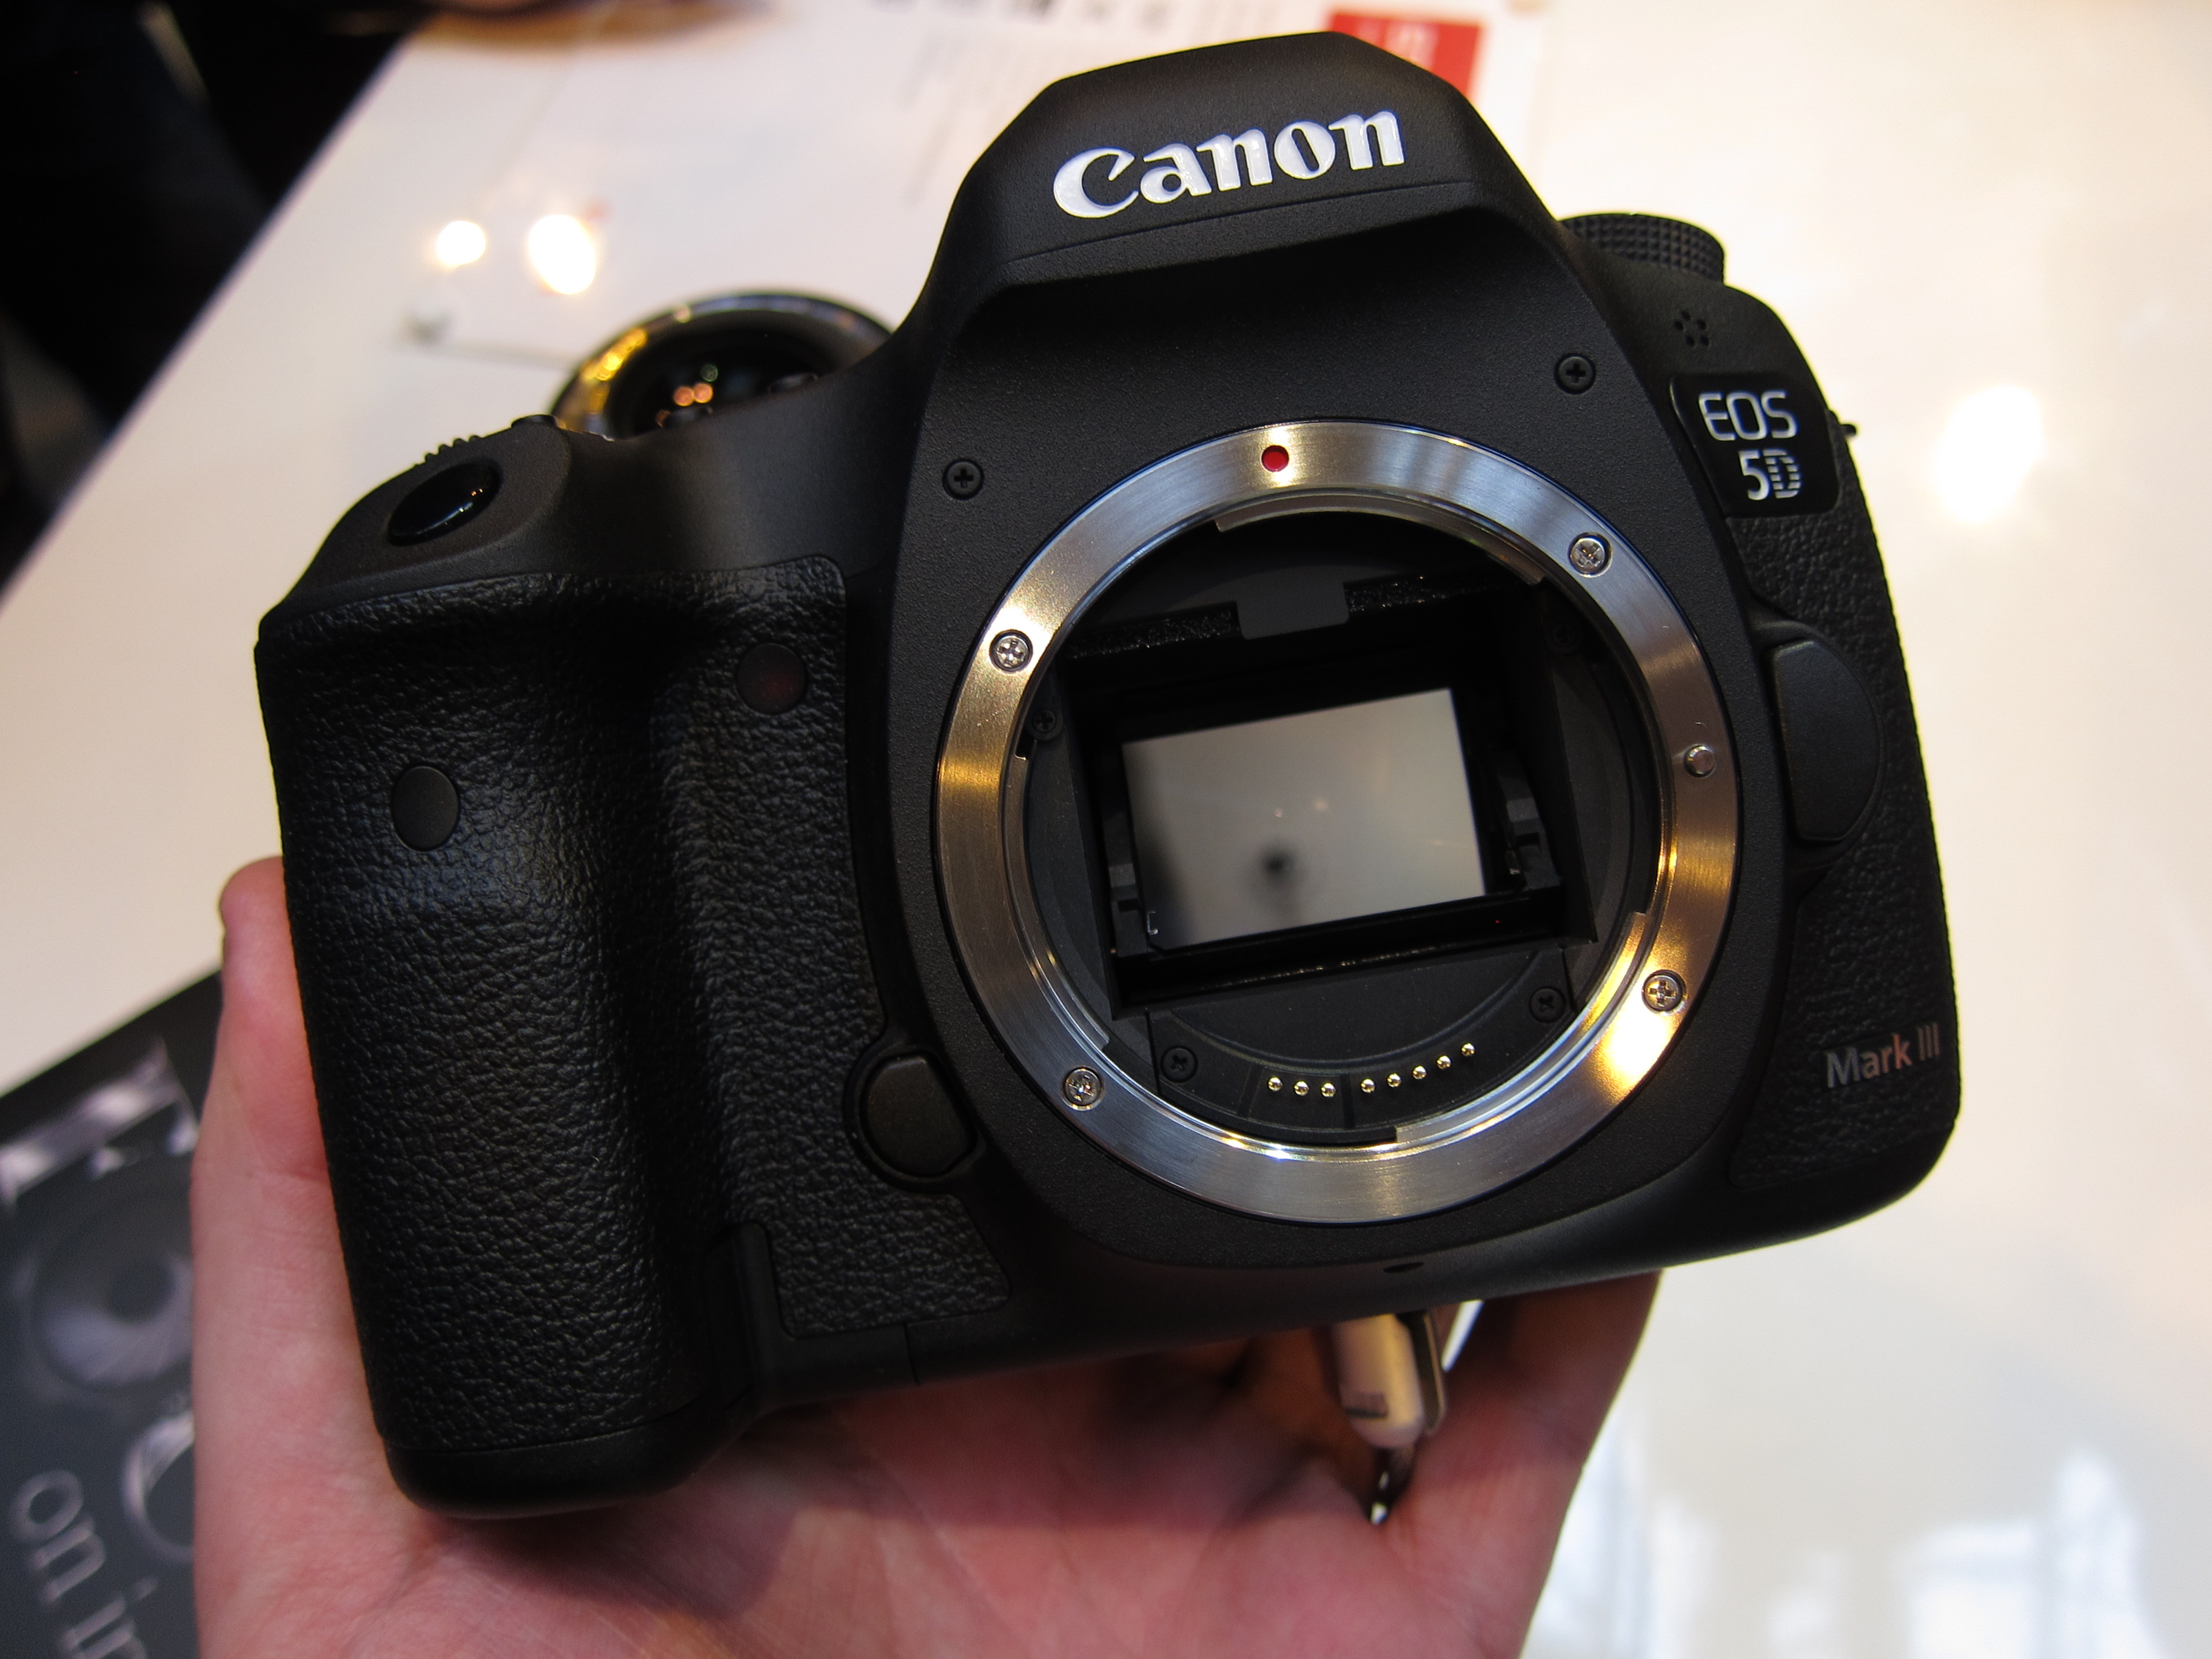 Canon EOS 5D Mark III Hands-On Preview with C300